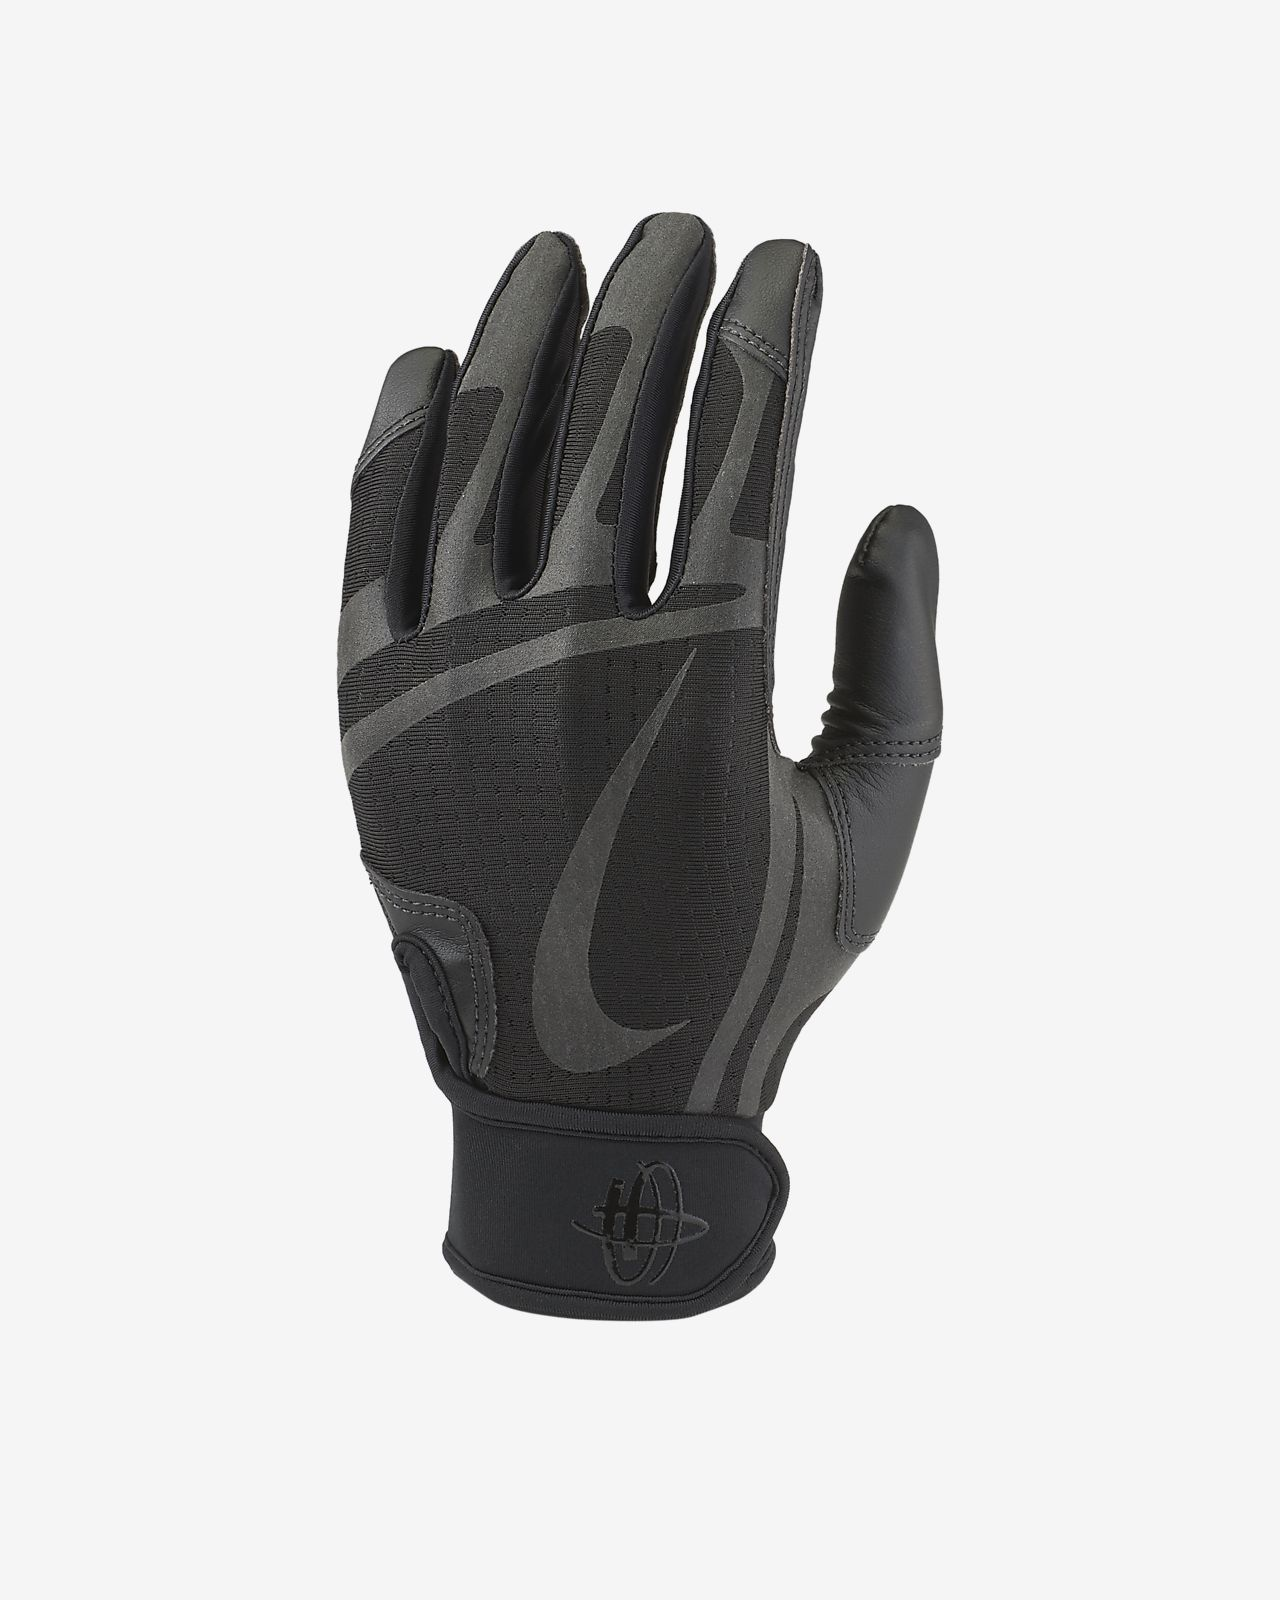 d372e9ee763f7 Nike Huarache Edge Big Kids  Baseball Batting Gloves. Nike.com